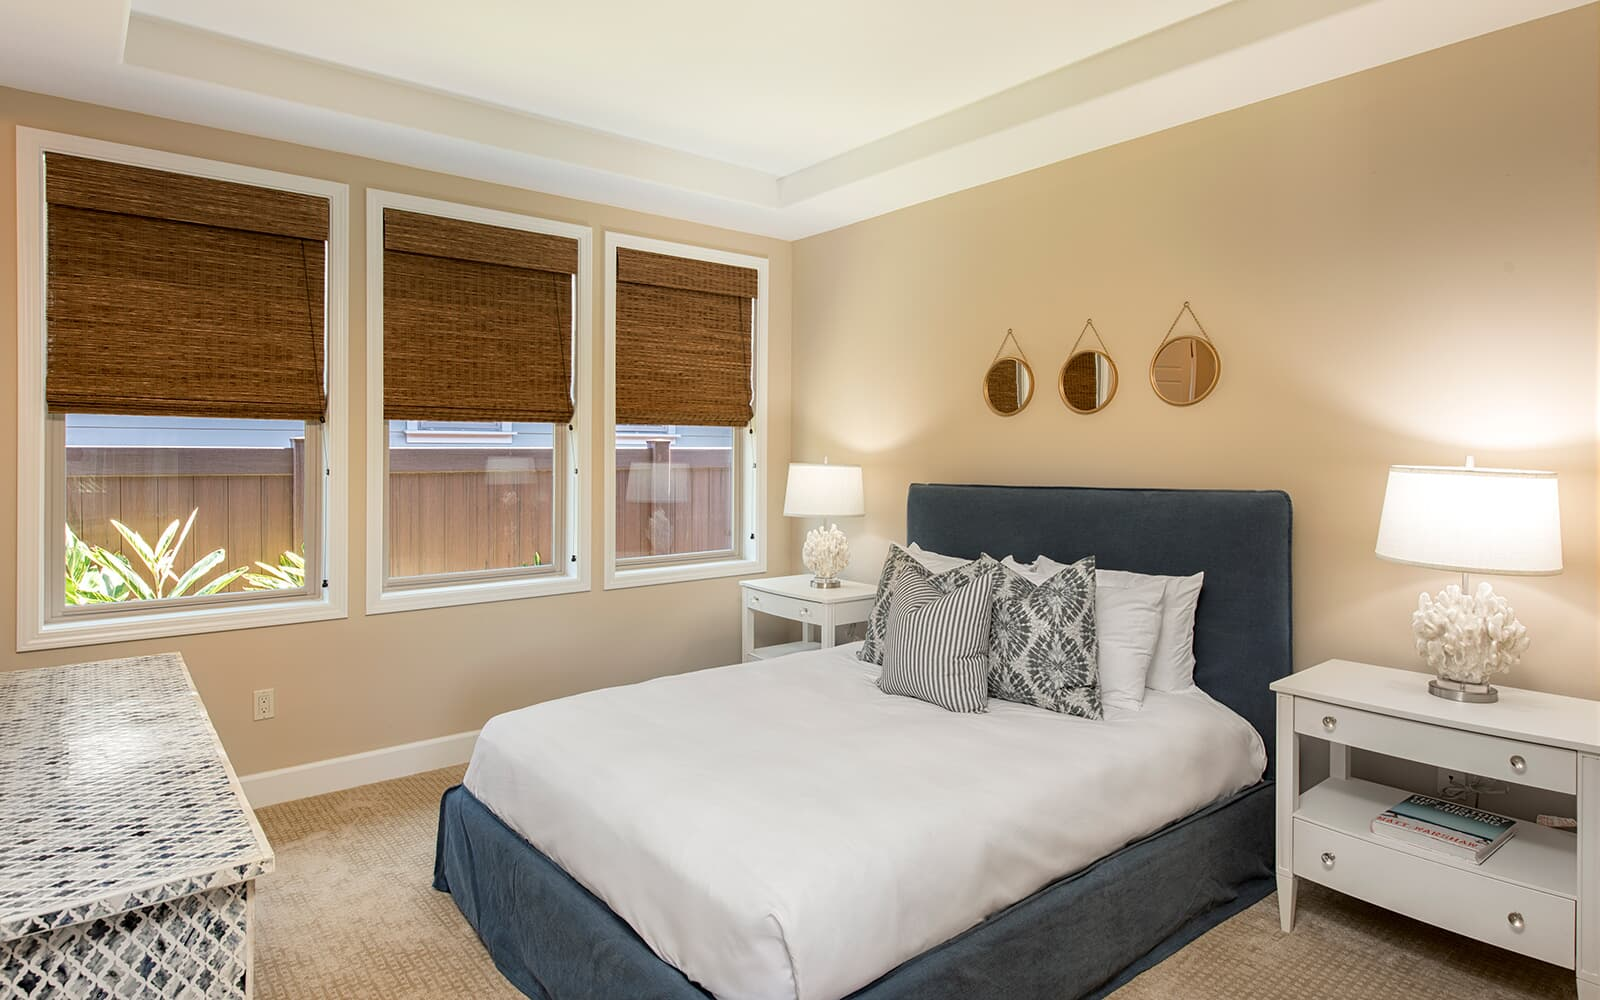 guest-bedroom-new-home-plan-3-holua-kai-at-keauhou-big-island-brookfield-residential